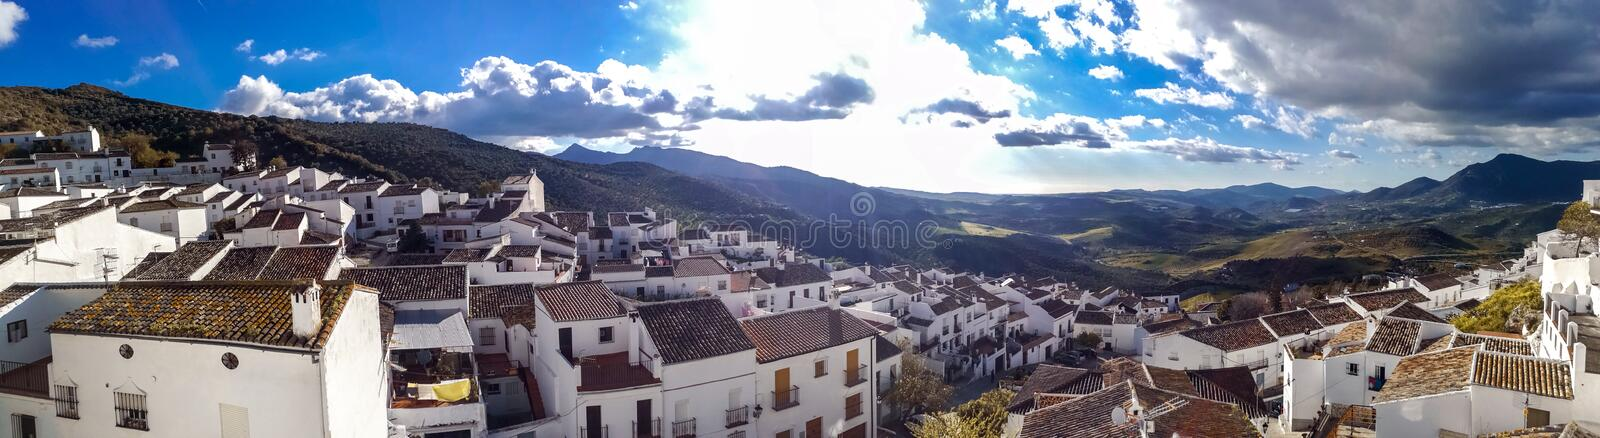 New bridge in Ronda, one of the famous white villages in Andalusia stock photos